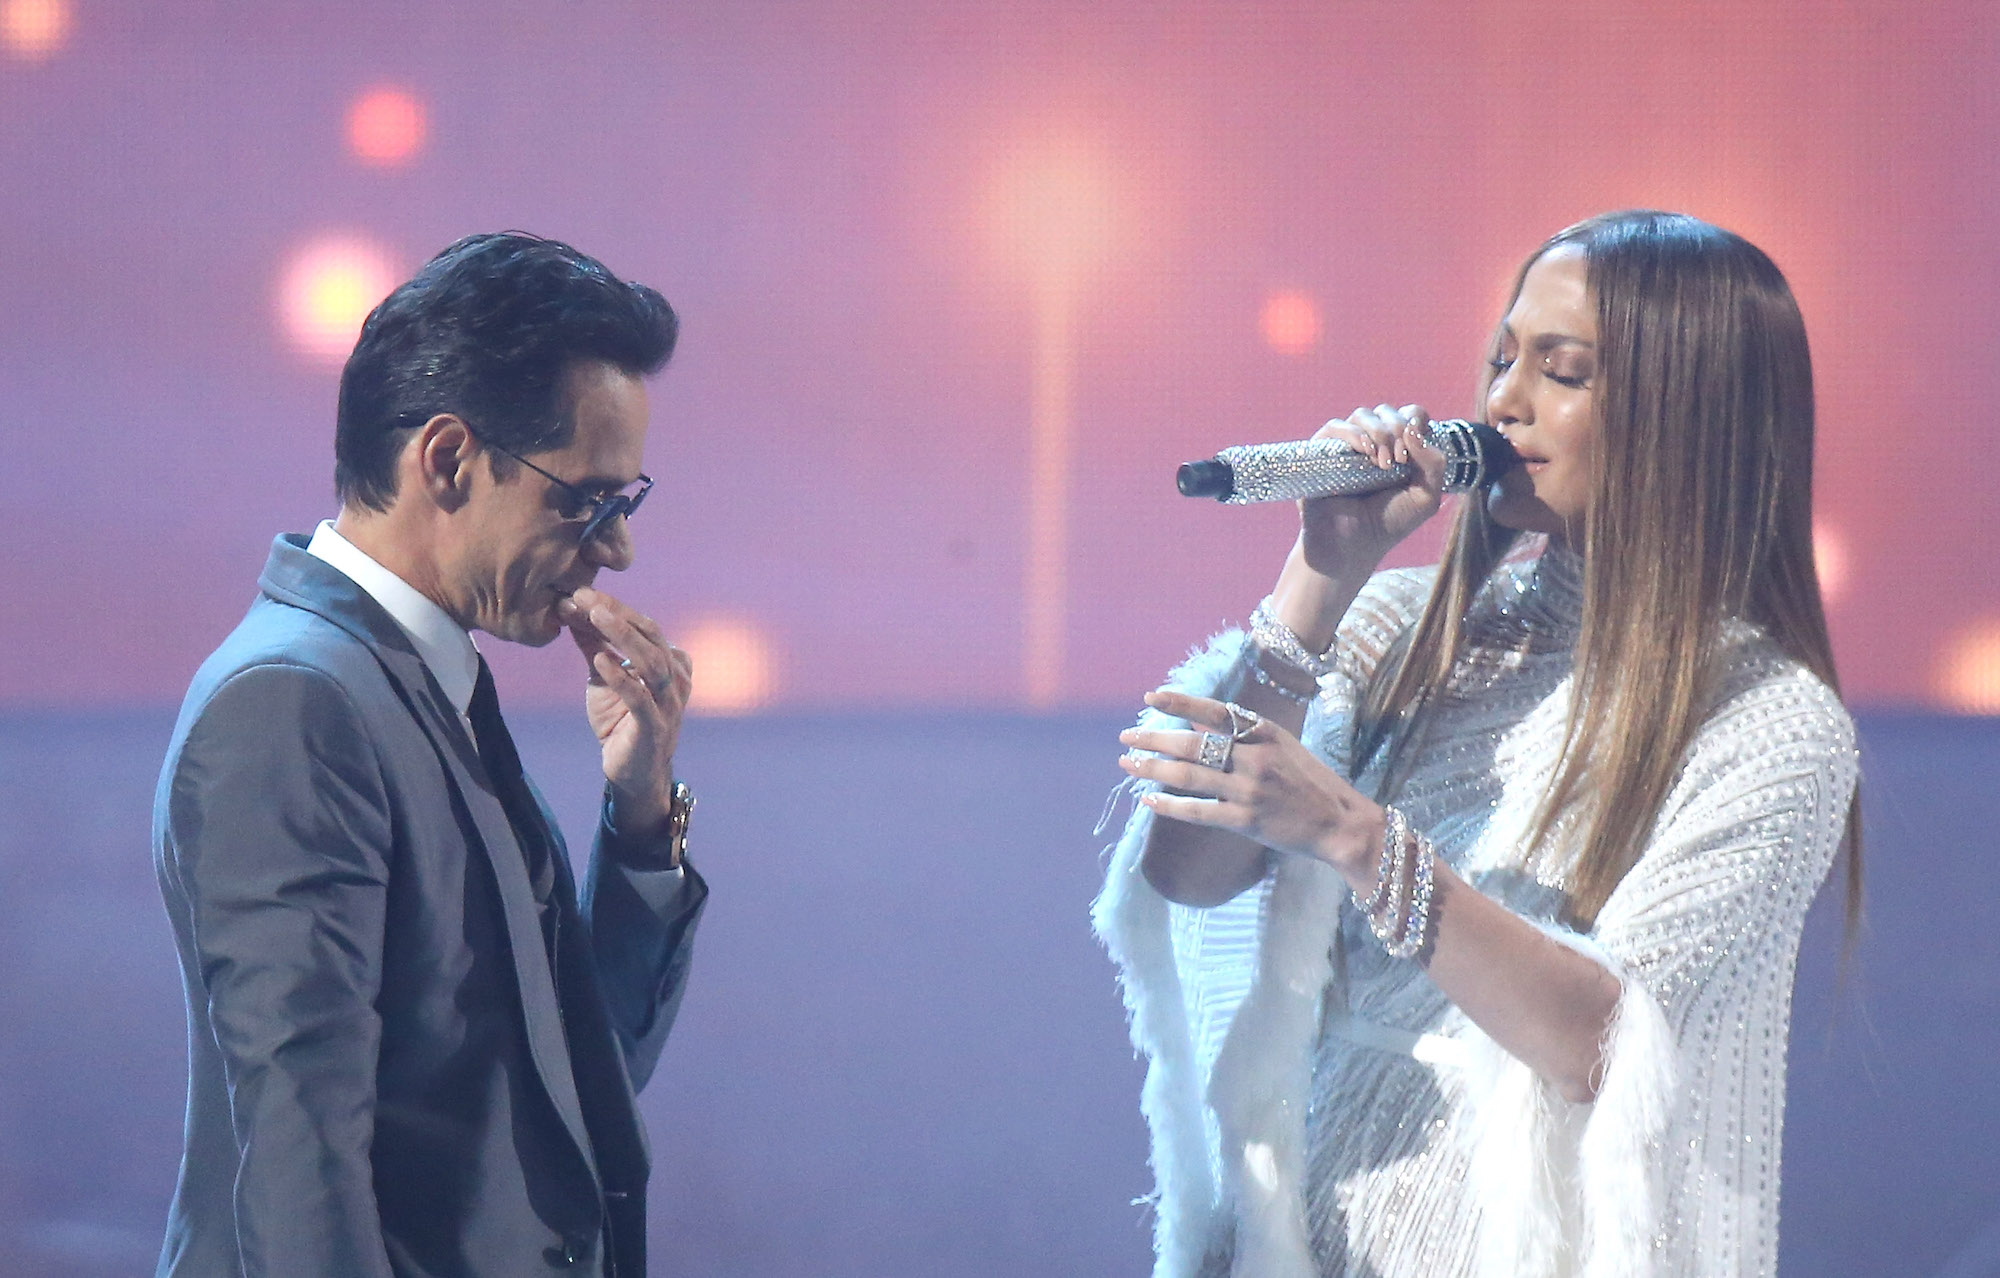 Jennifer Lopez and Marc Anthony perform onstage during the 17th Annual Latin Grammy Awards on Nov. 17, 2016.